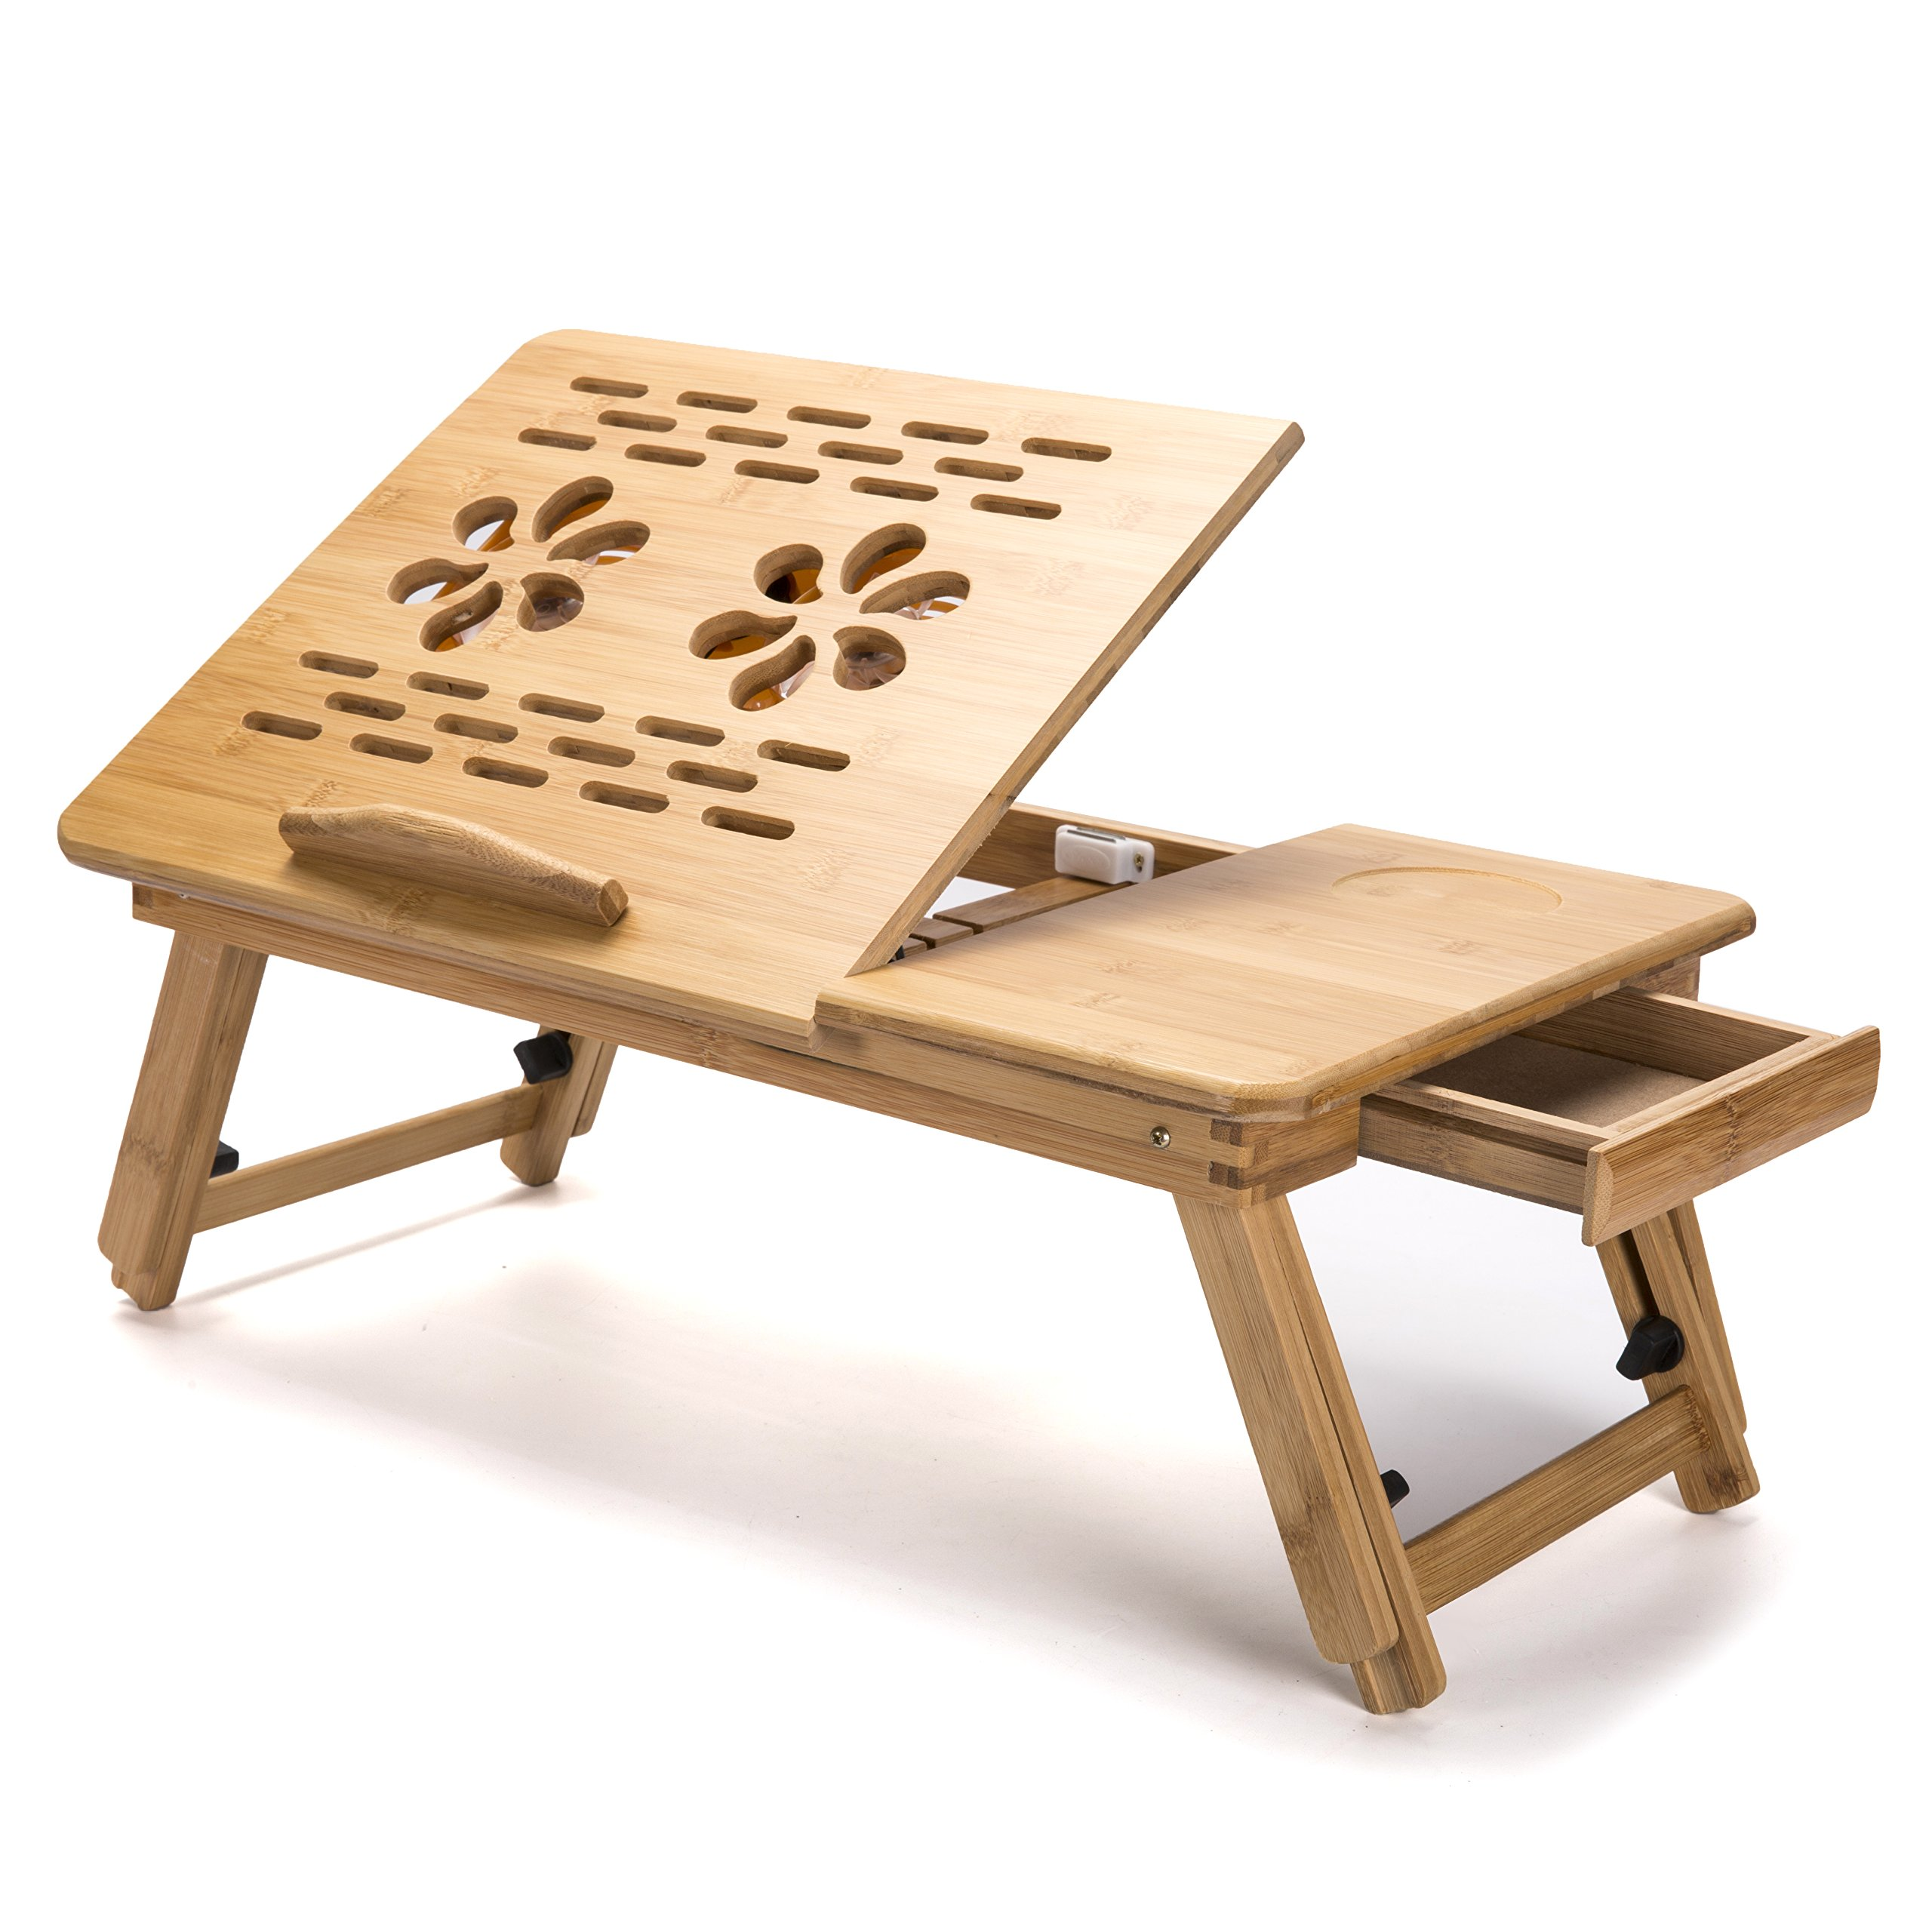 Laptop Desk Adjustable Legs Laptop Desk Table 100% Bamboo with USB Fan Foldable Breakfast Serving Bed Tray by ACCOTCOLE